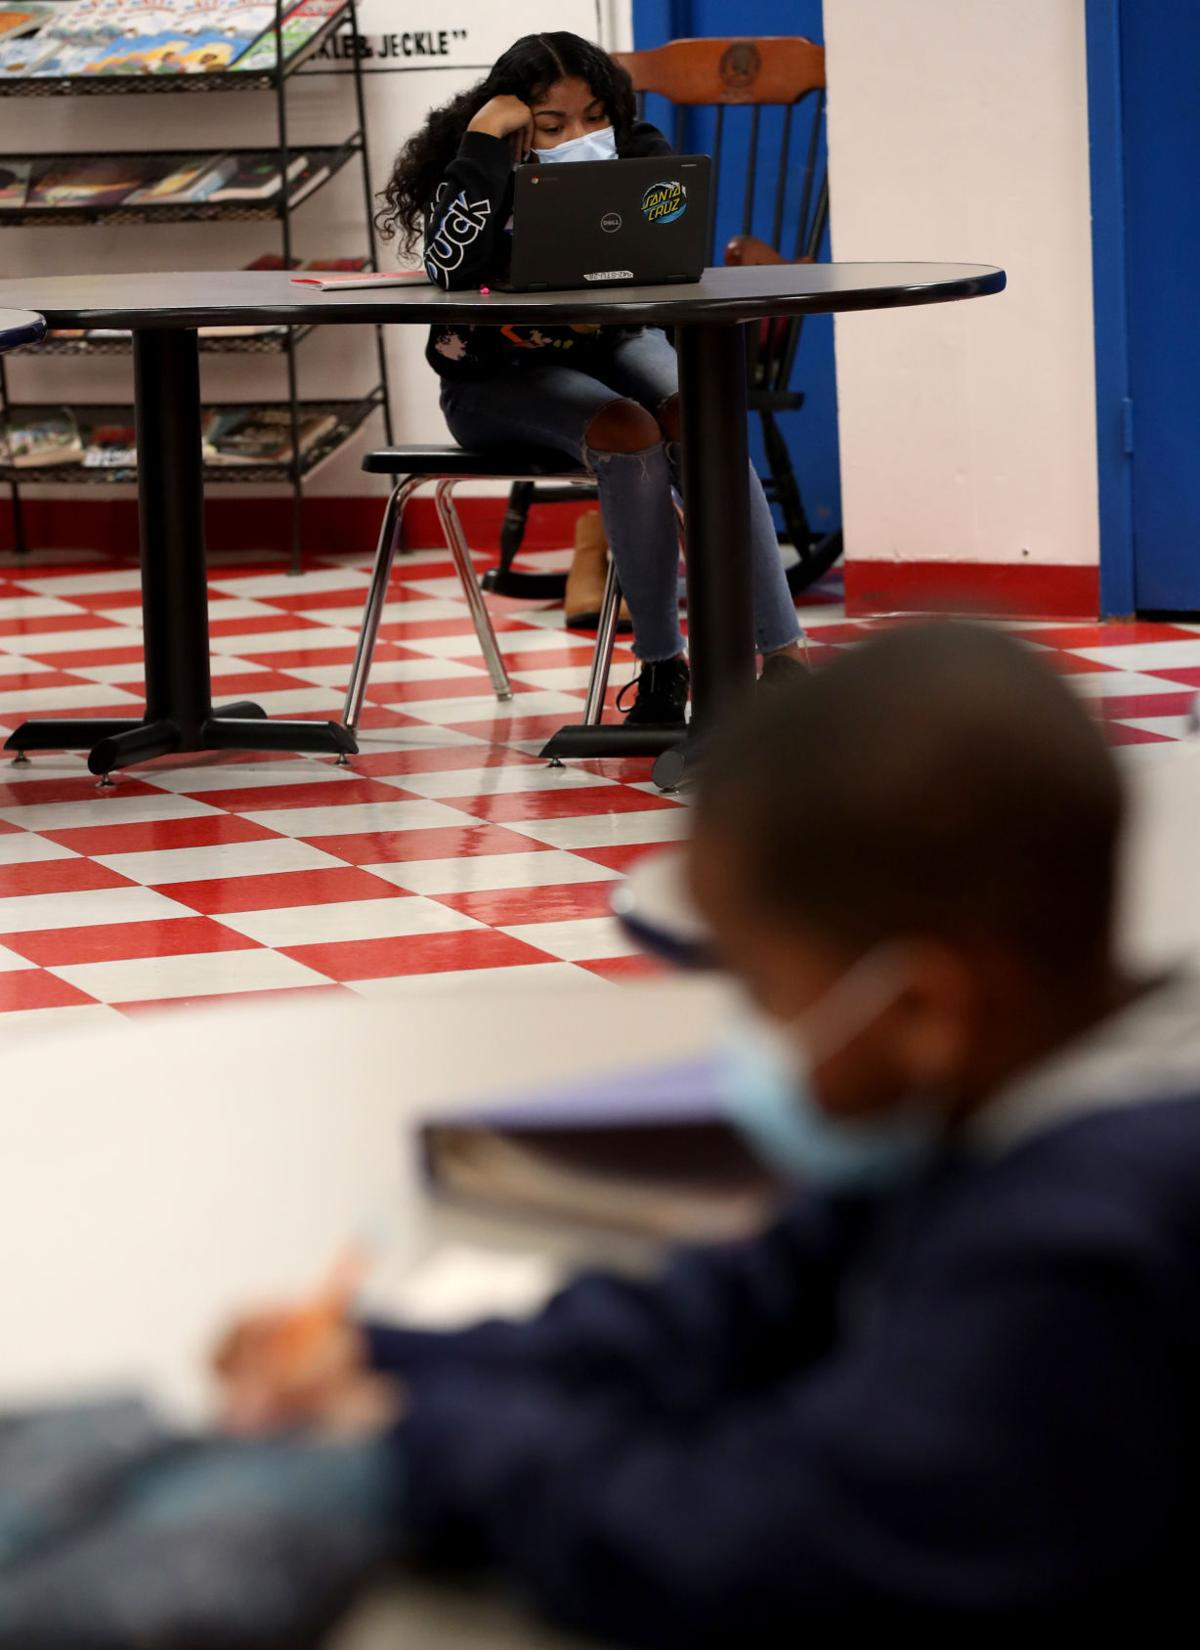 Grades drop as motivation, disruption affects students